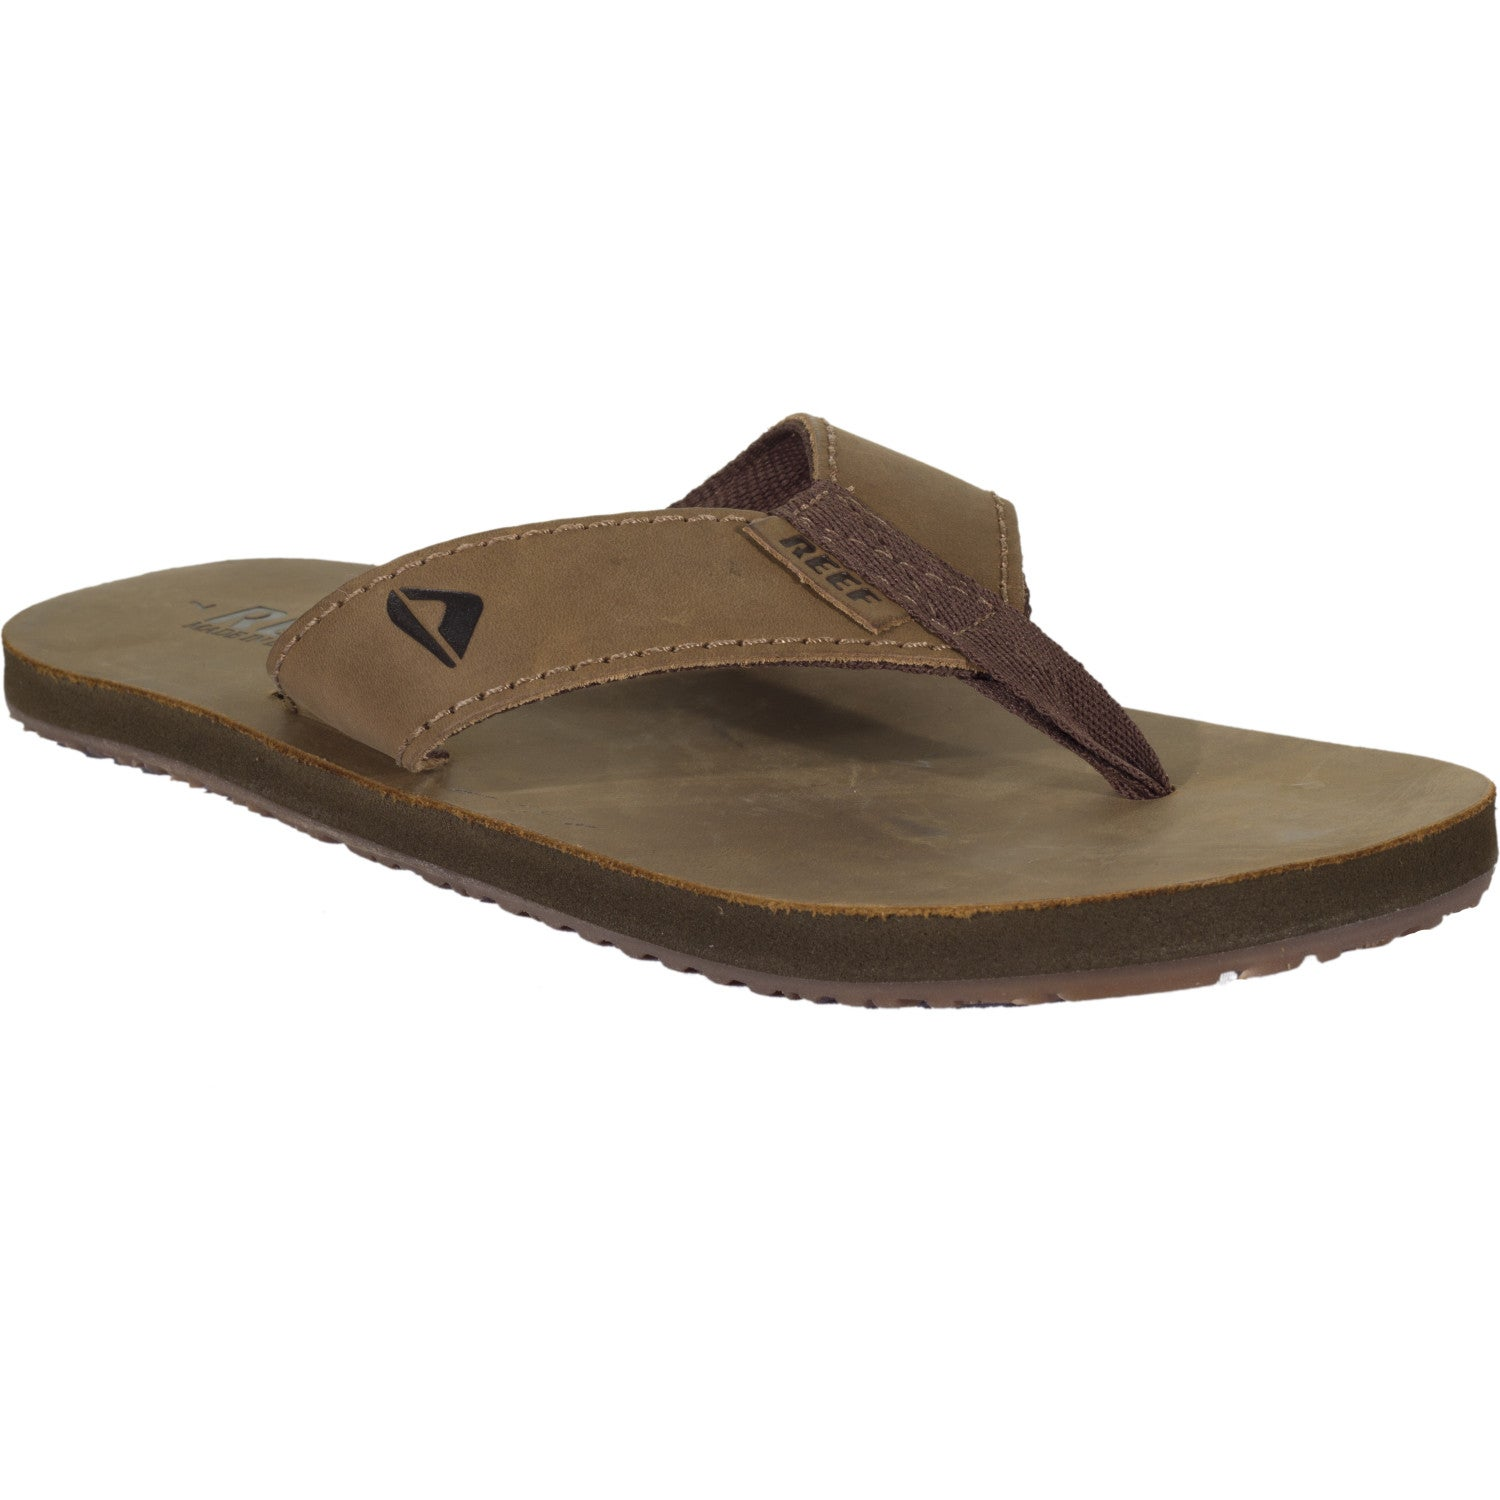 8ba6d6e619b4 Image is loading Reef-Leather-Smoothy-Mens-Footwear-Sandals-Bronze-Brown-